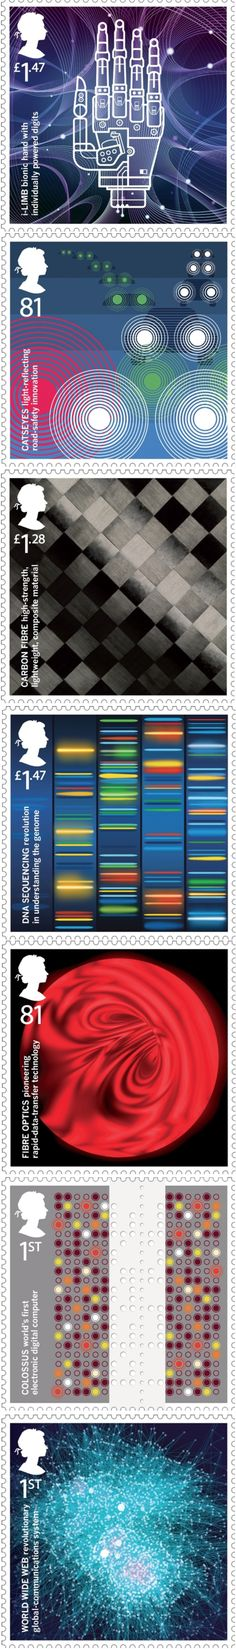 Royal Mail launches inventors' stamps  GBH has designed a set of special stamps for the Royal Mail, which depicts eight key British inventions created in the last 100 years.  Read More: http://www.designweek.co.uk/news/royal-mail-launches-inventors-stamps/3039834.article